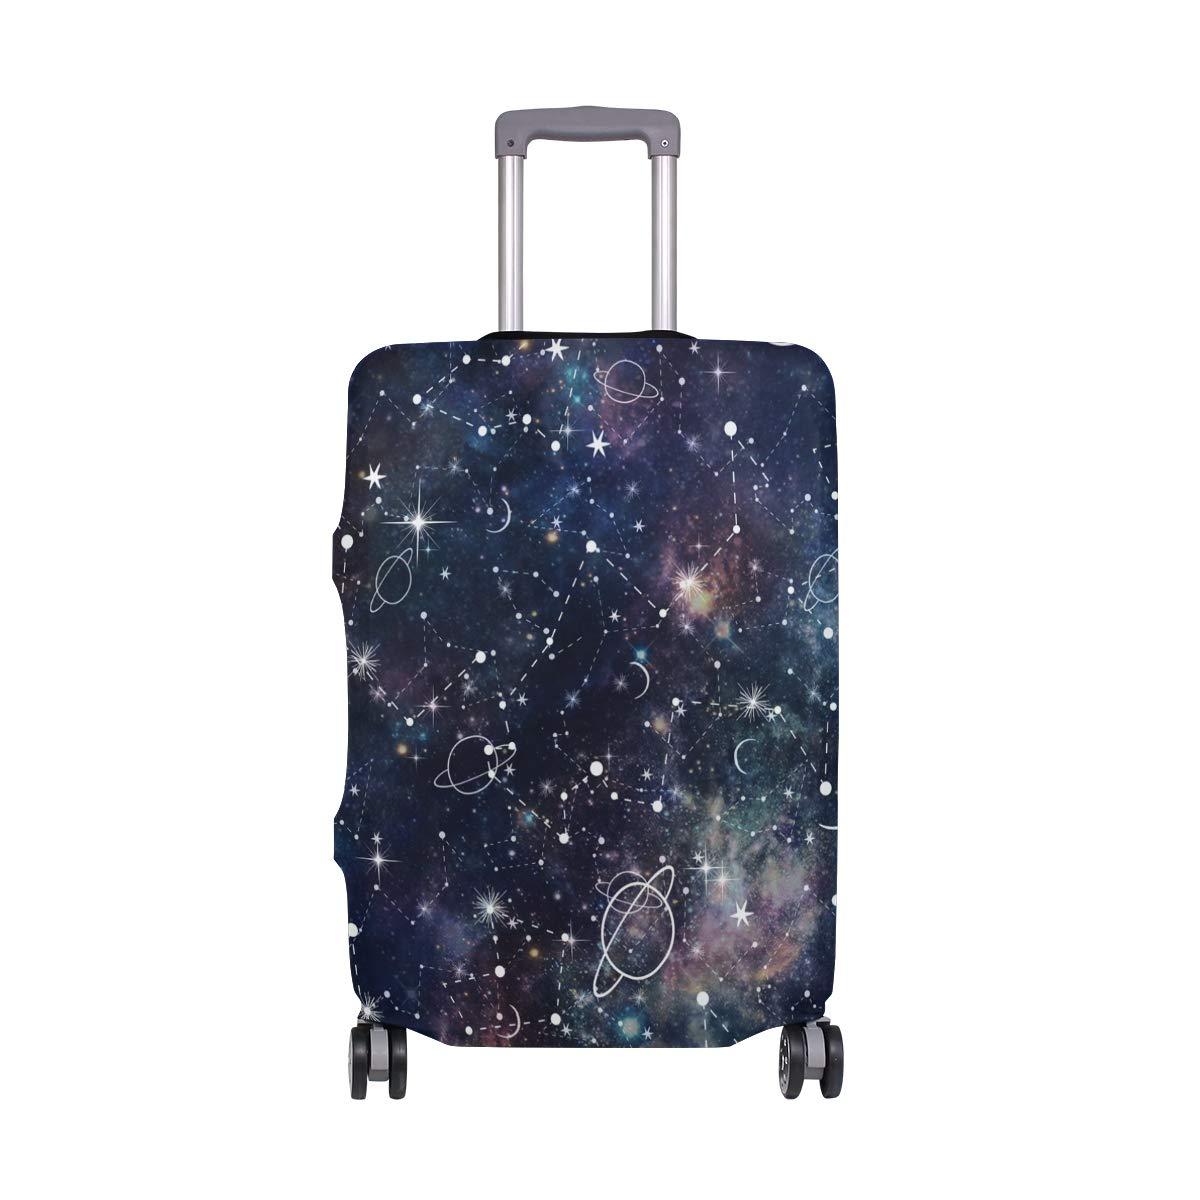 Baggage Covers Night Planet Star Galaxy Washable Protective Case